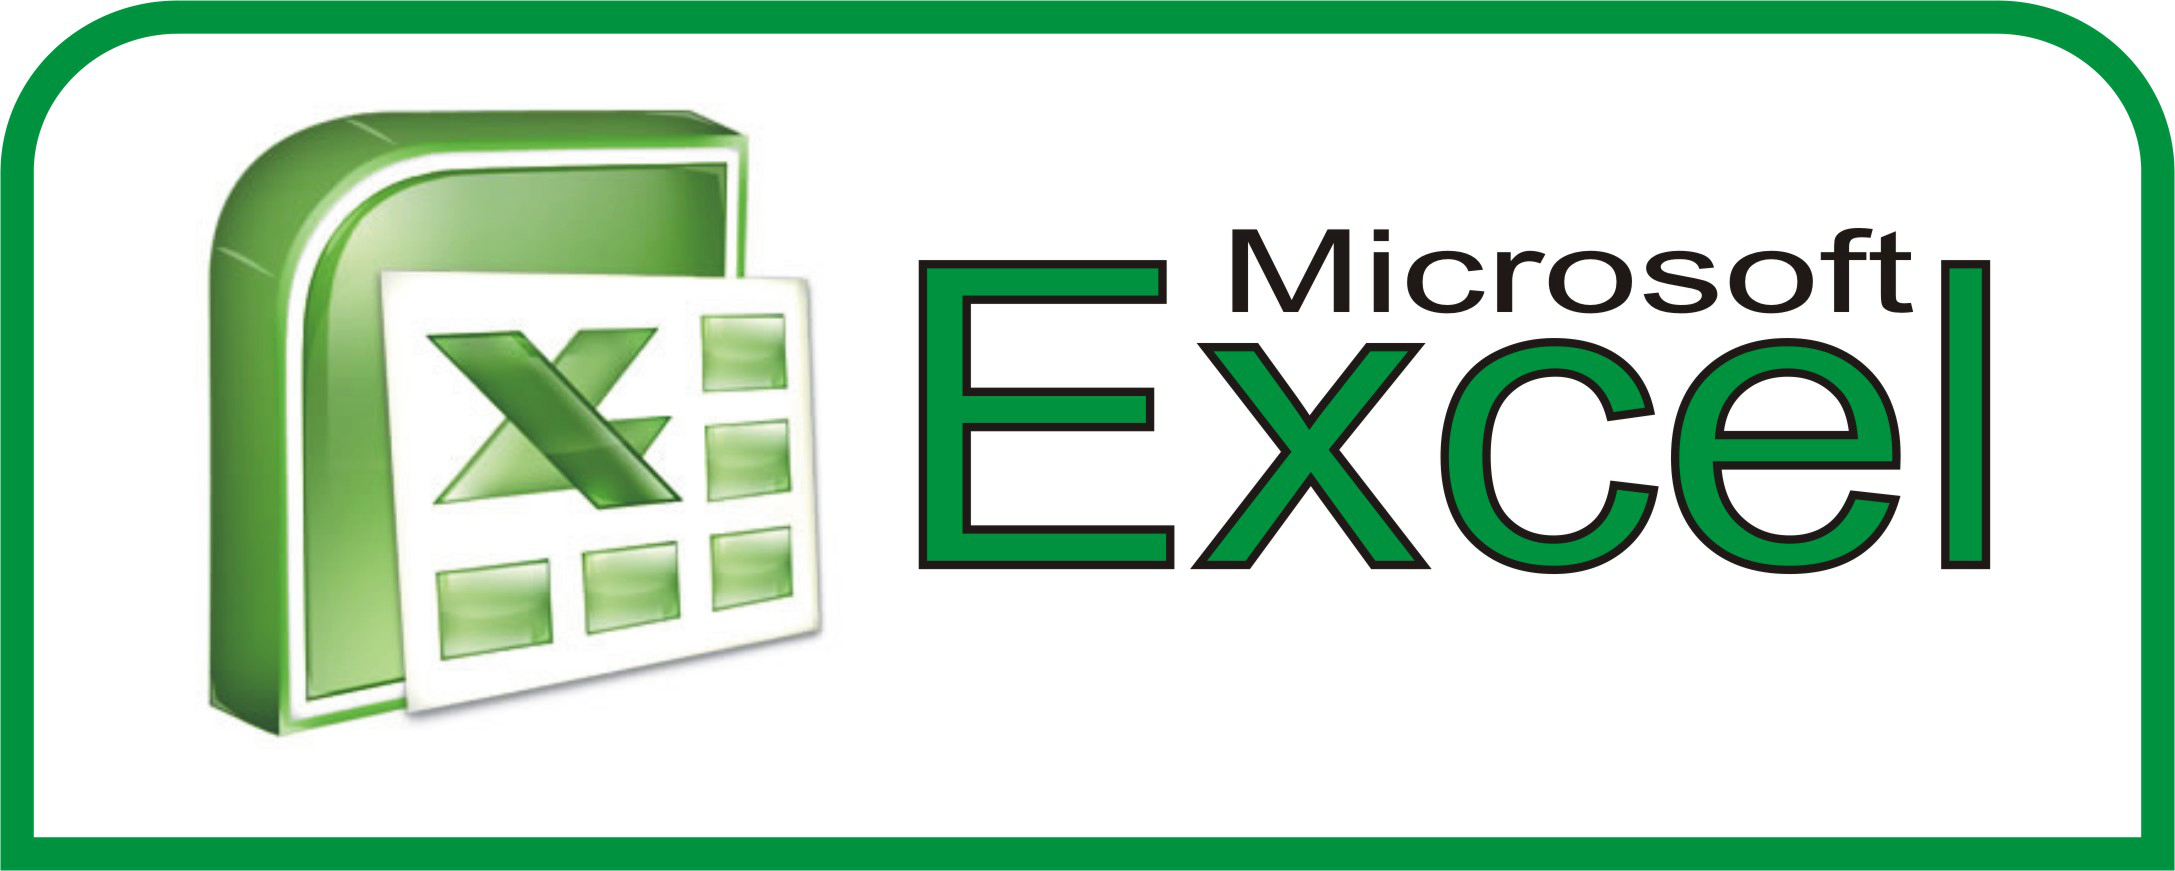 Ediblewildsus  Marvellous  Excel Shortcuts You Probably Didnt Know About  Techdissected With Luxury Create Excel Template Besides How To Autofit In Excel  Furthermore Excel Marketing With Delectable How Do I Find Duplicates In Excel Also Excel Iterative Calculation In Addition Array Formula In Excel And Excel Evaluate Formula As Well As Create Barcode In Excel Additionally Rate Formula Excel From Techdissectedcom With Ediblewildsus  Luxury  Excel Shortcuts You Probably Didnt Know About  Techdissected With Delectable Create Excel Template Besides How To Autofit In Excel  Furthermore Excel Marketing And Marvellous How Do I Find Duplicates In Excel Also Excel Iterative Calculation In Addition Array Formula In Excel From Techdissectedcom